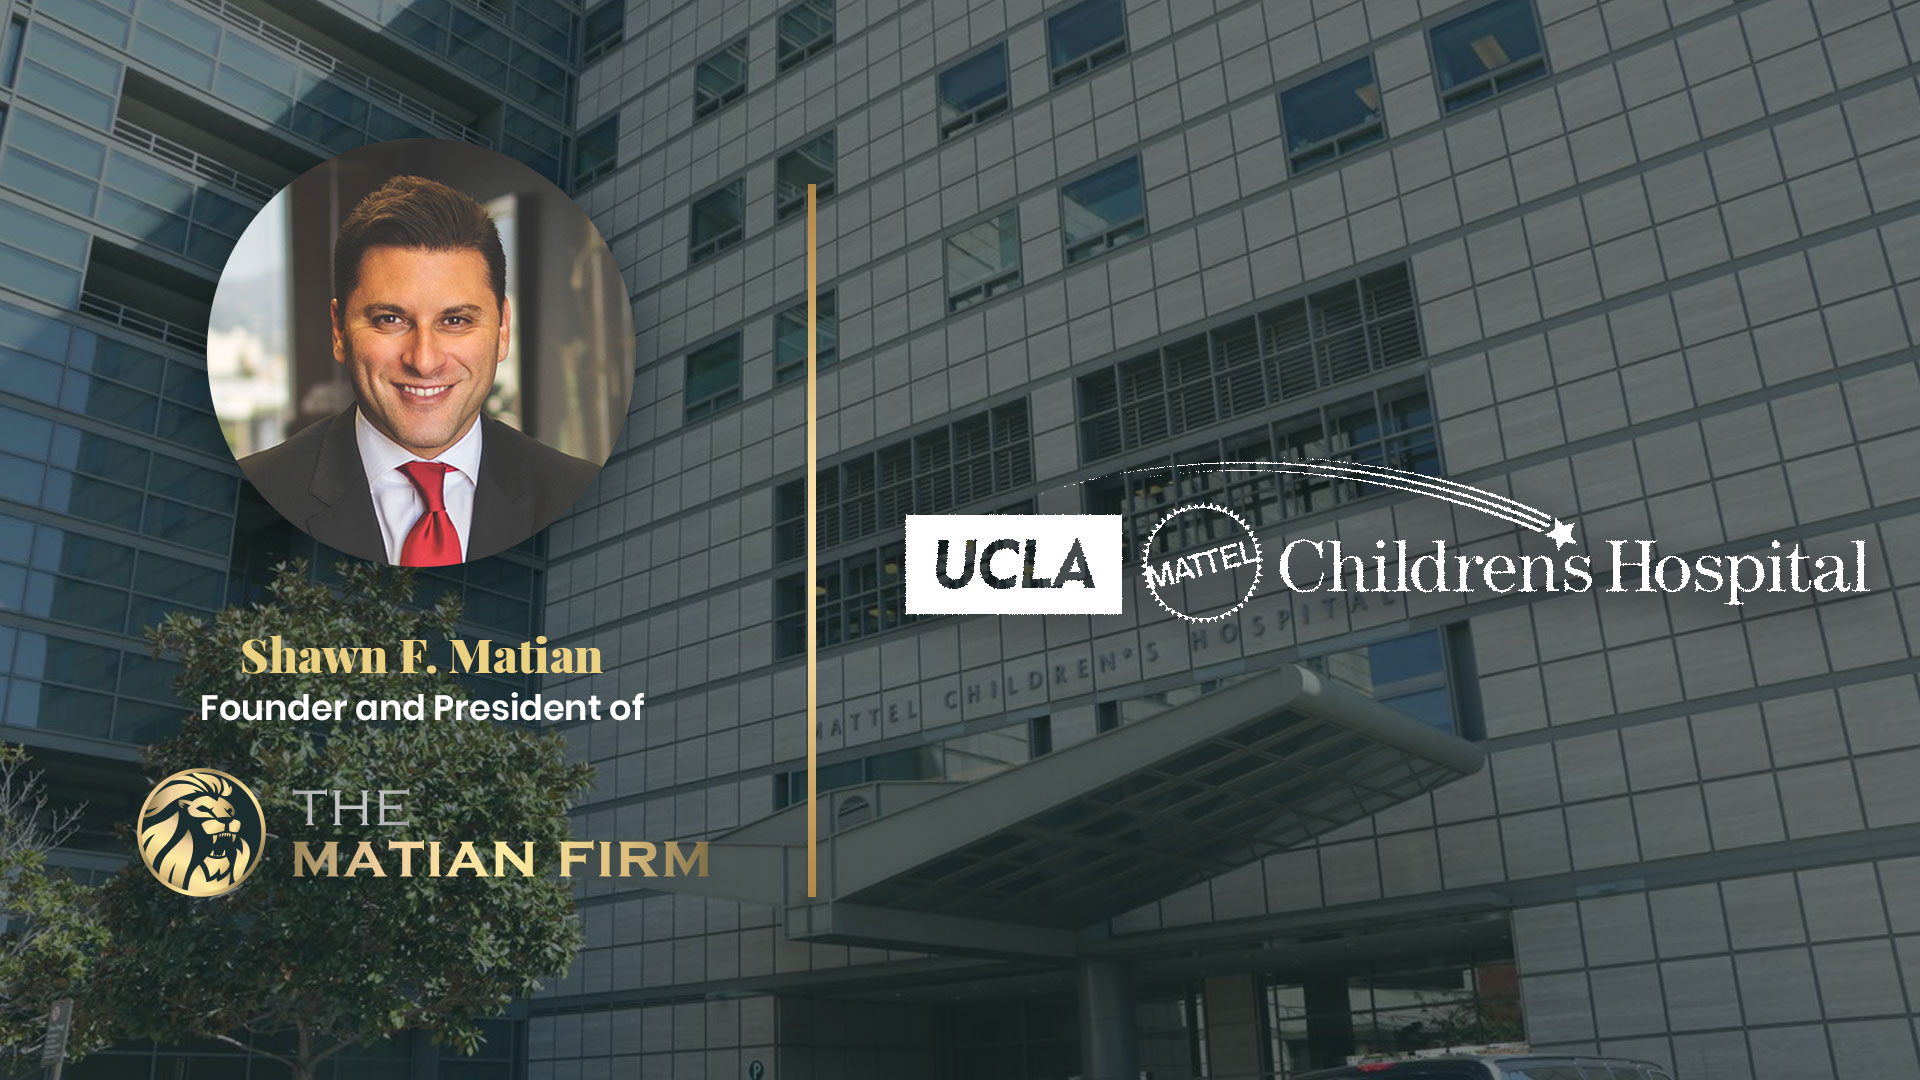 The Matian Firm donates to children hospital